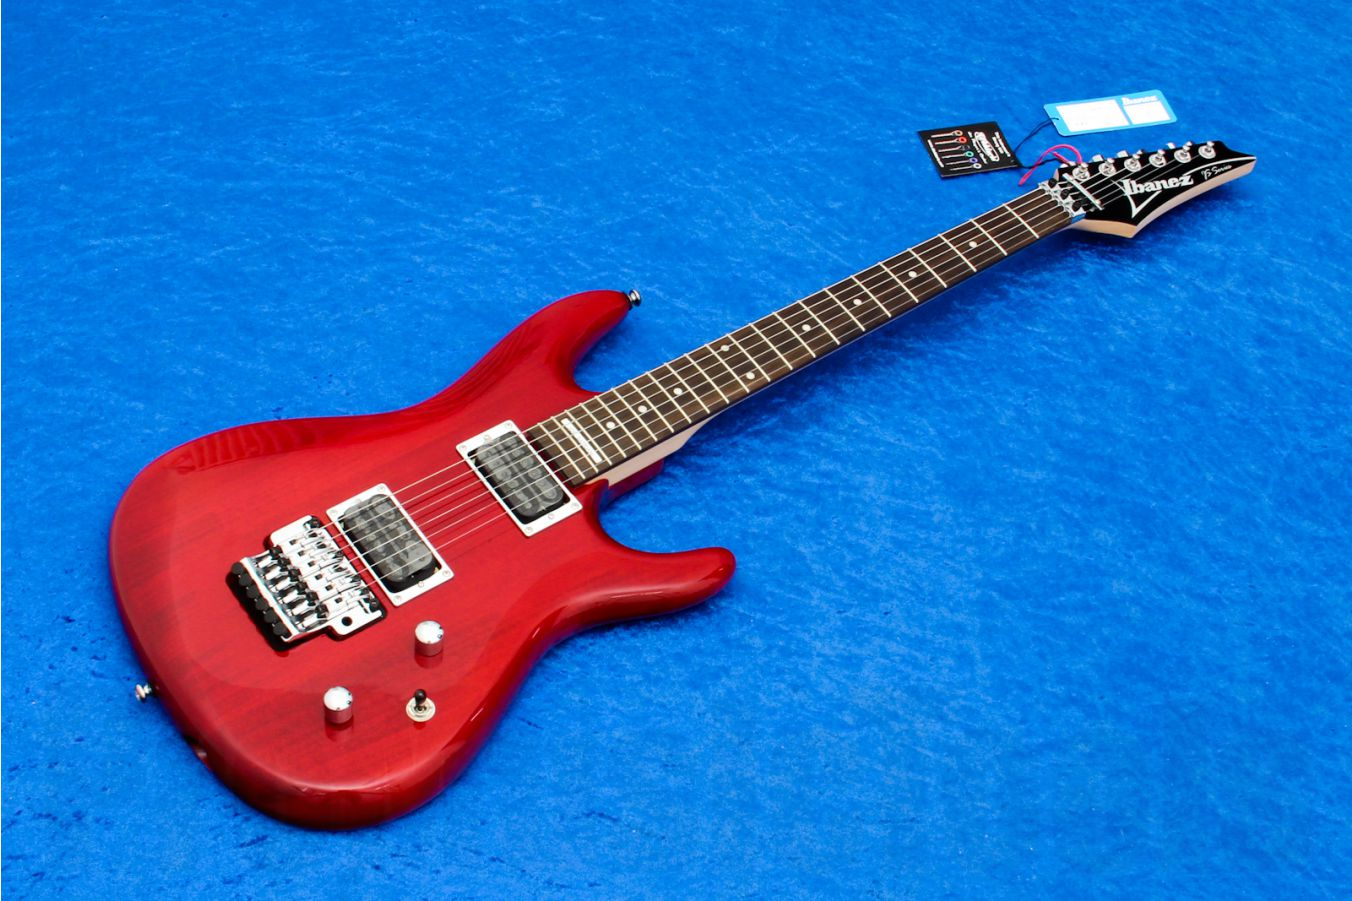 Ibanez JS100 TR - Transparent Red - Joe Satriani Signature